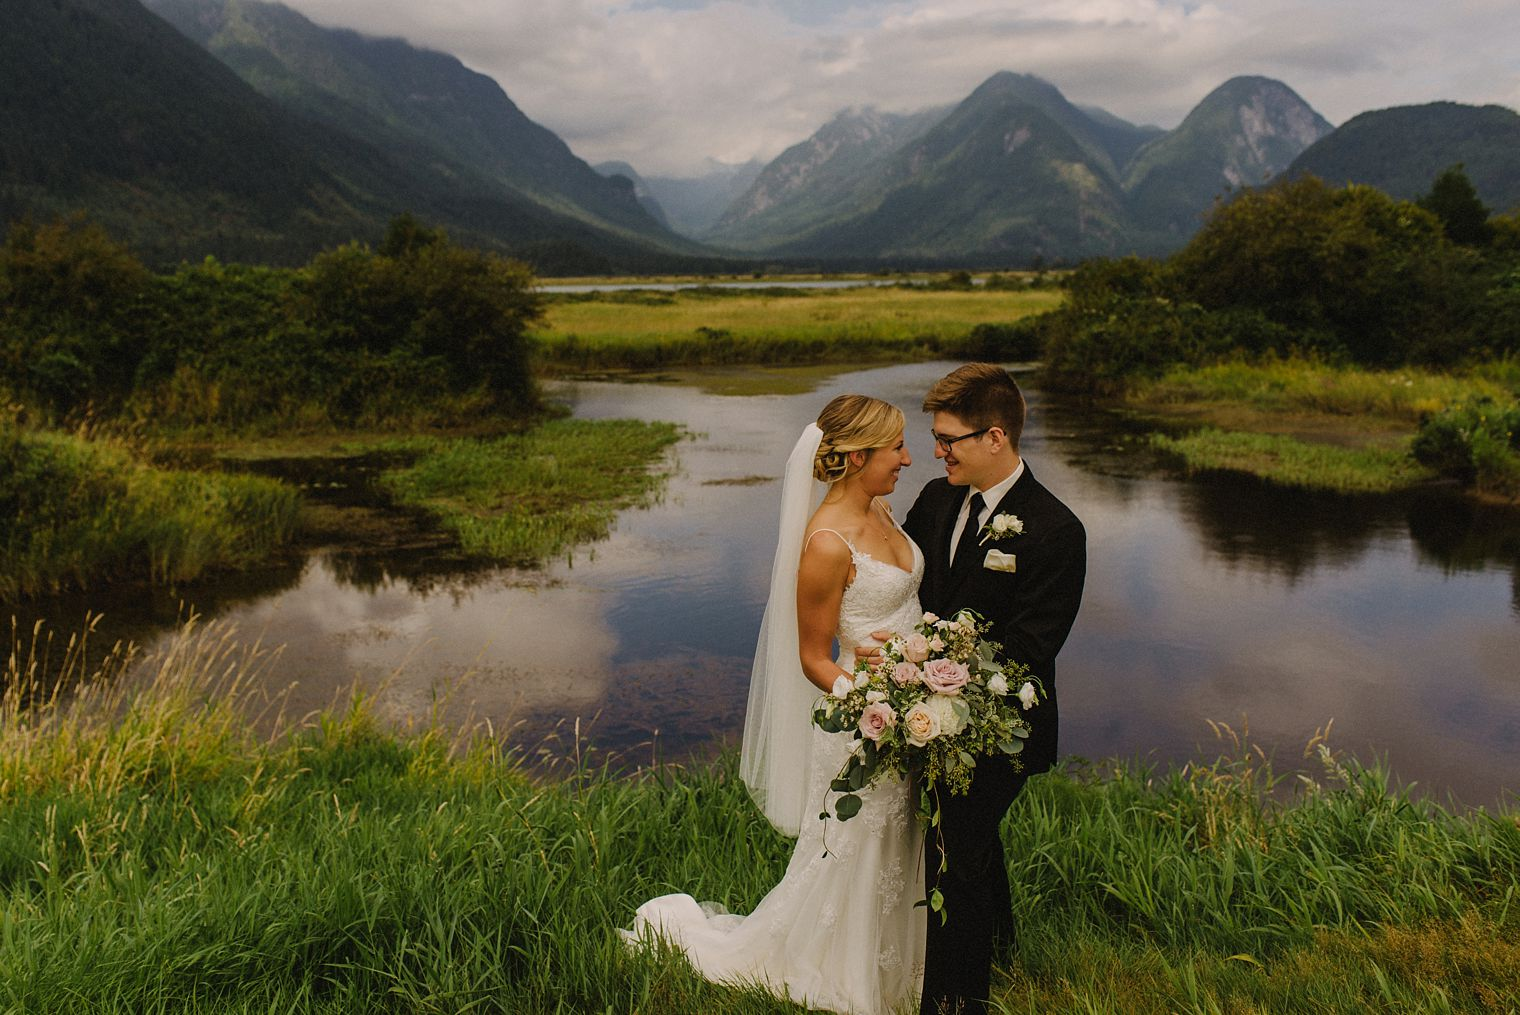 pitt lake bridal photo